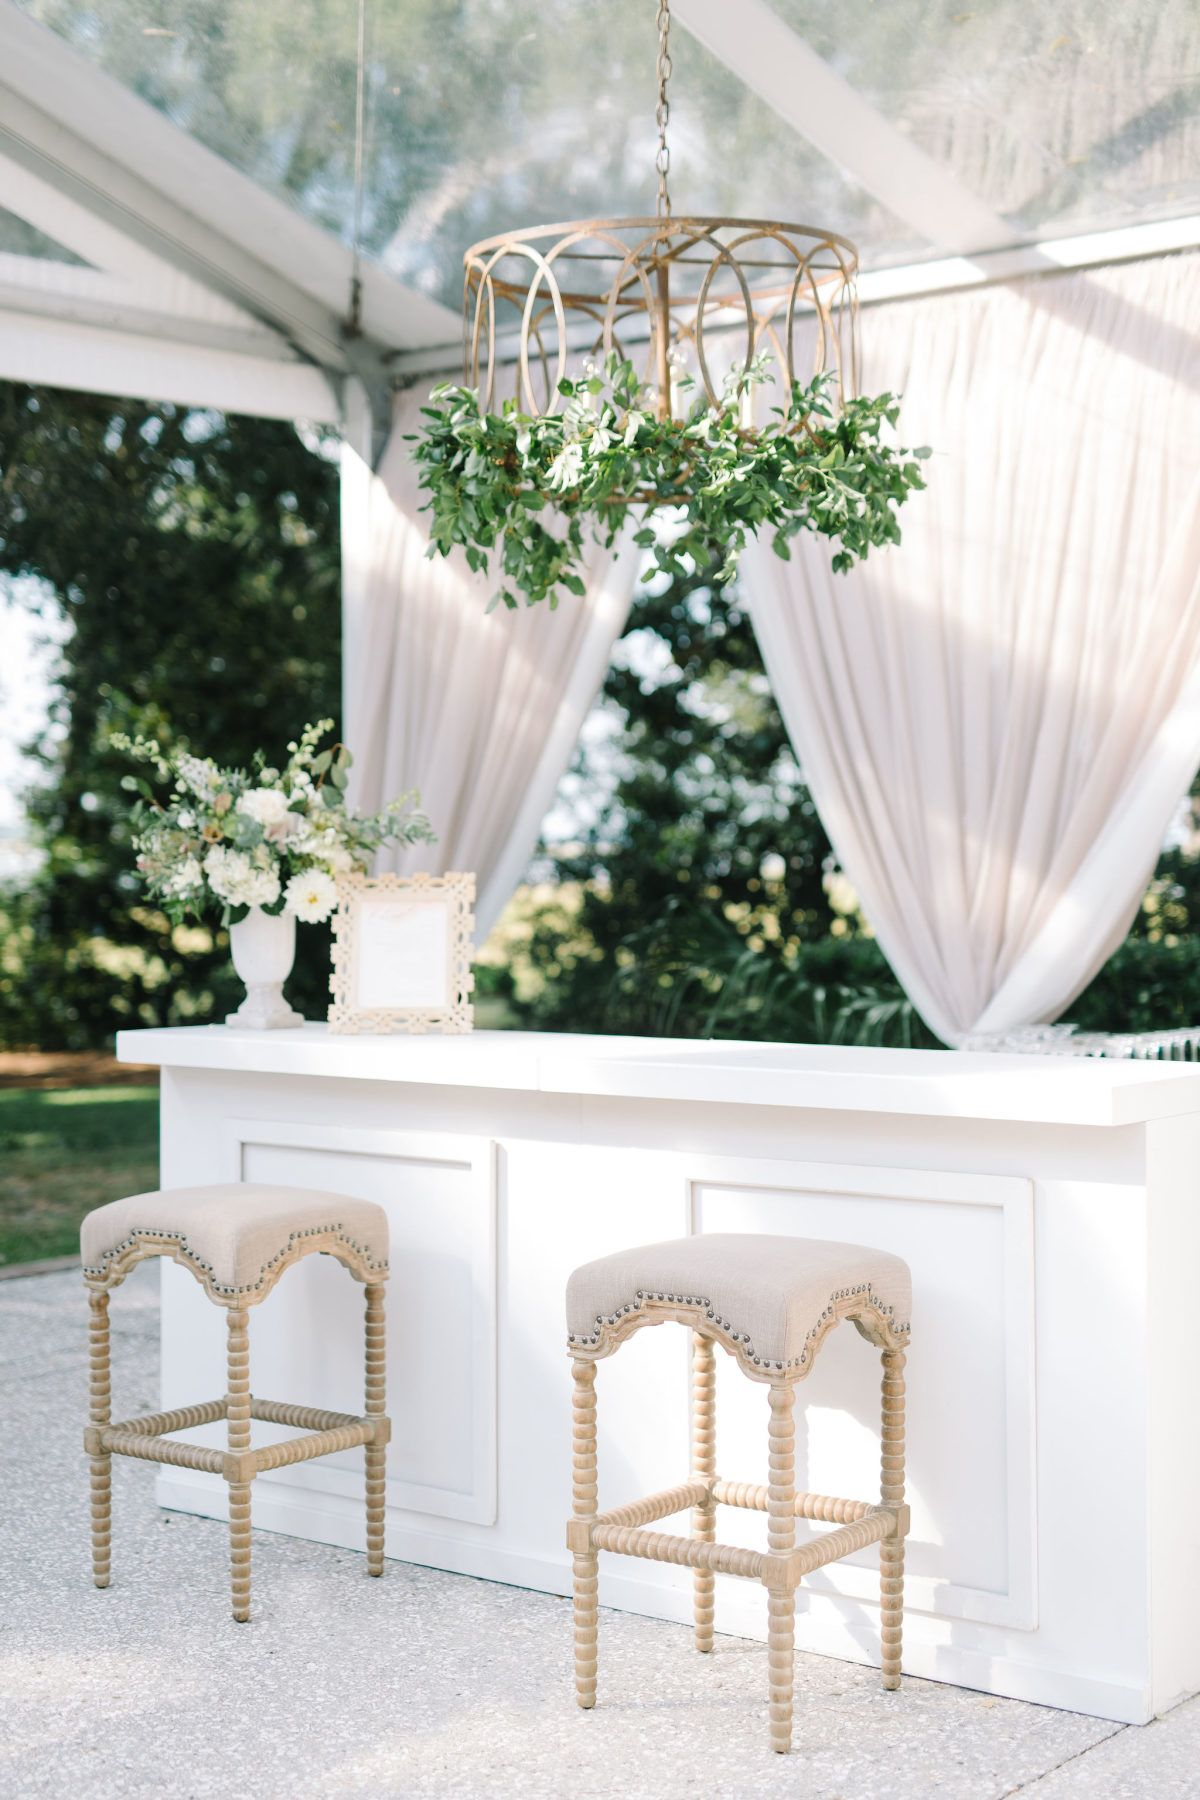 Southern Charm Meets Romantic Glam with This